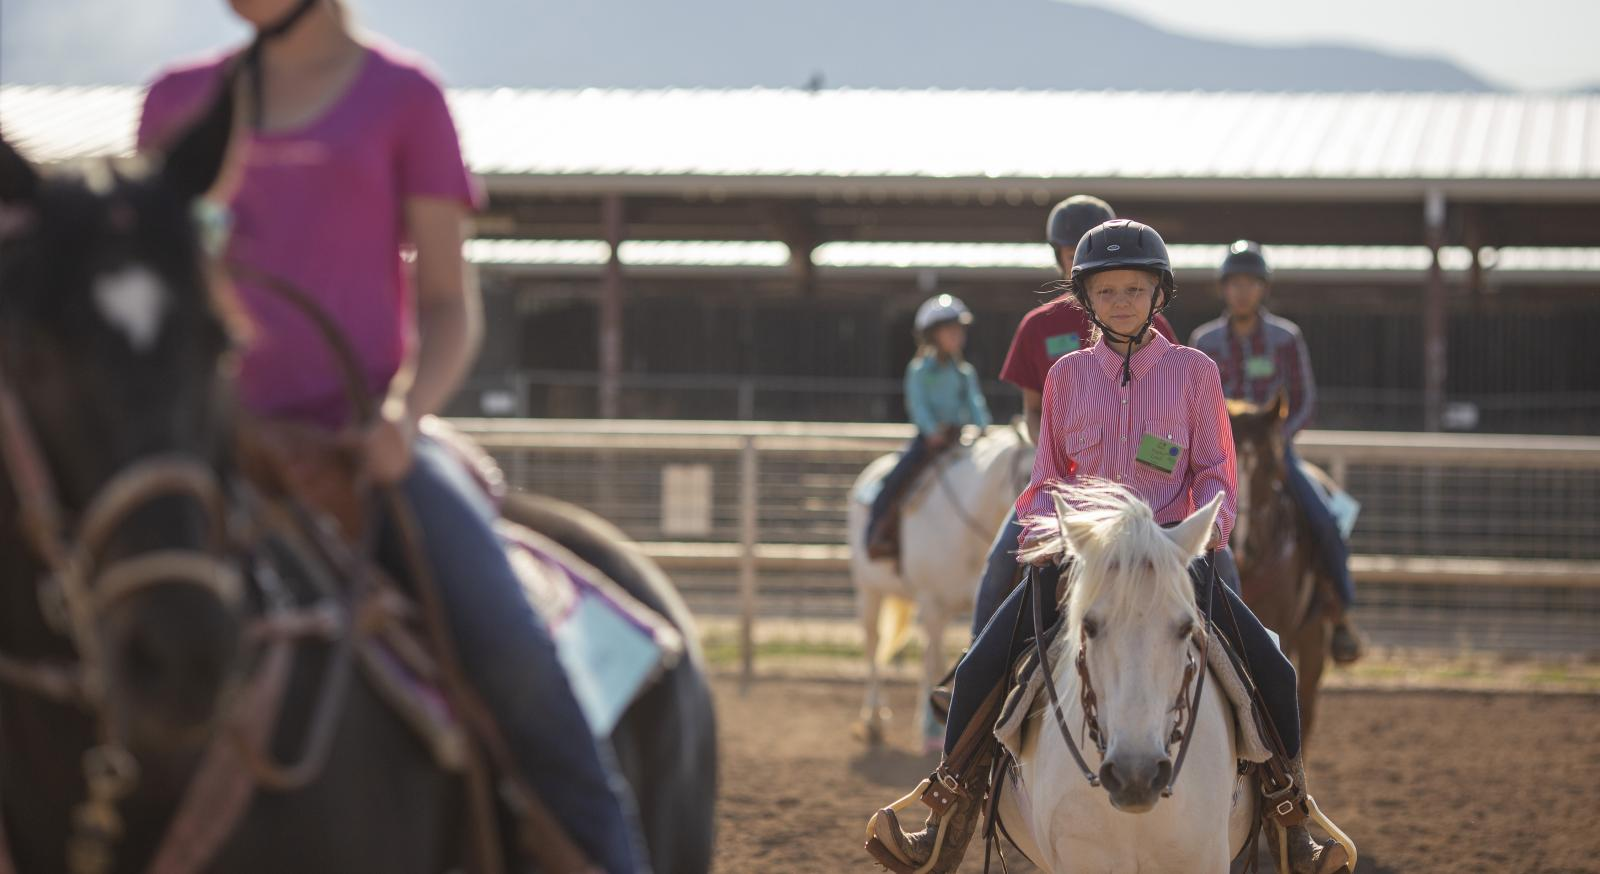 young people riding horses calmly around an arena